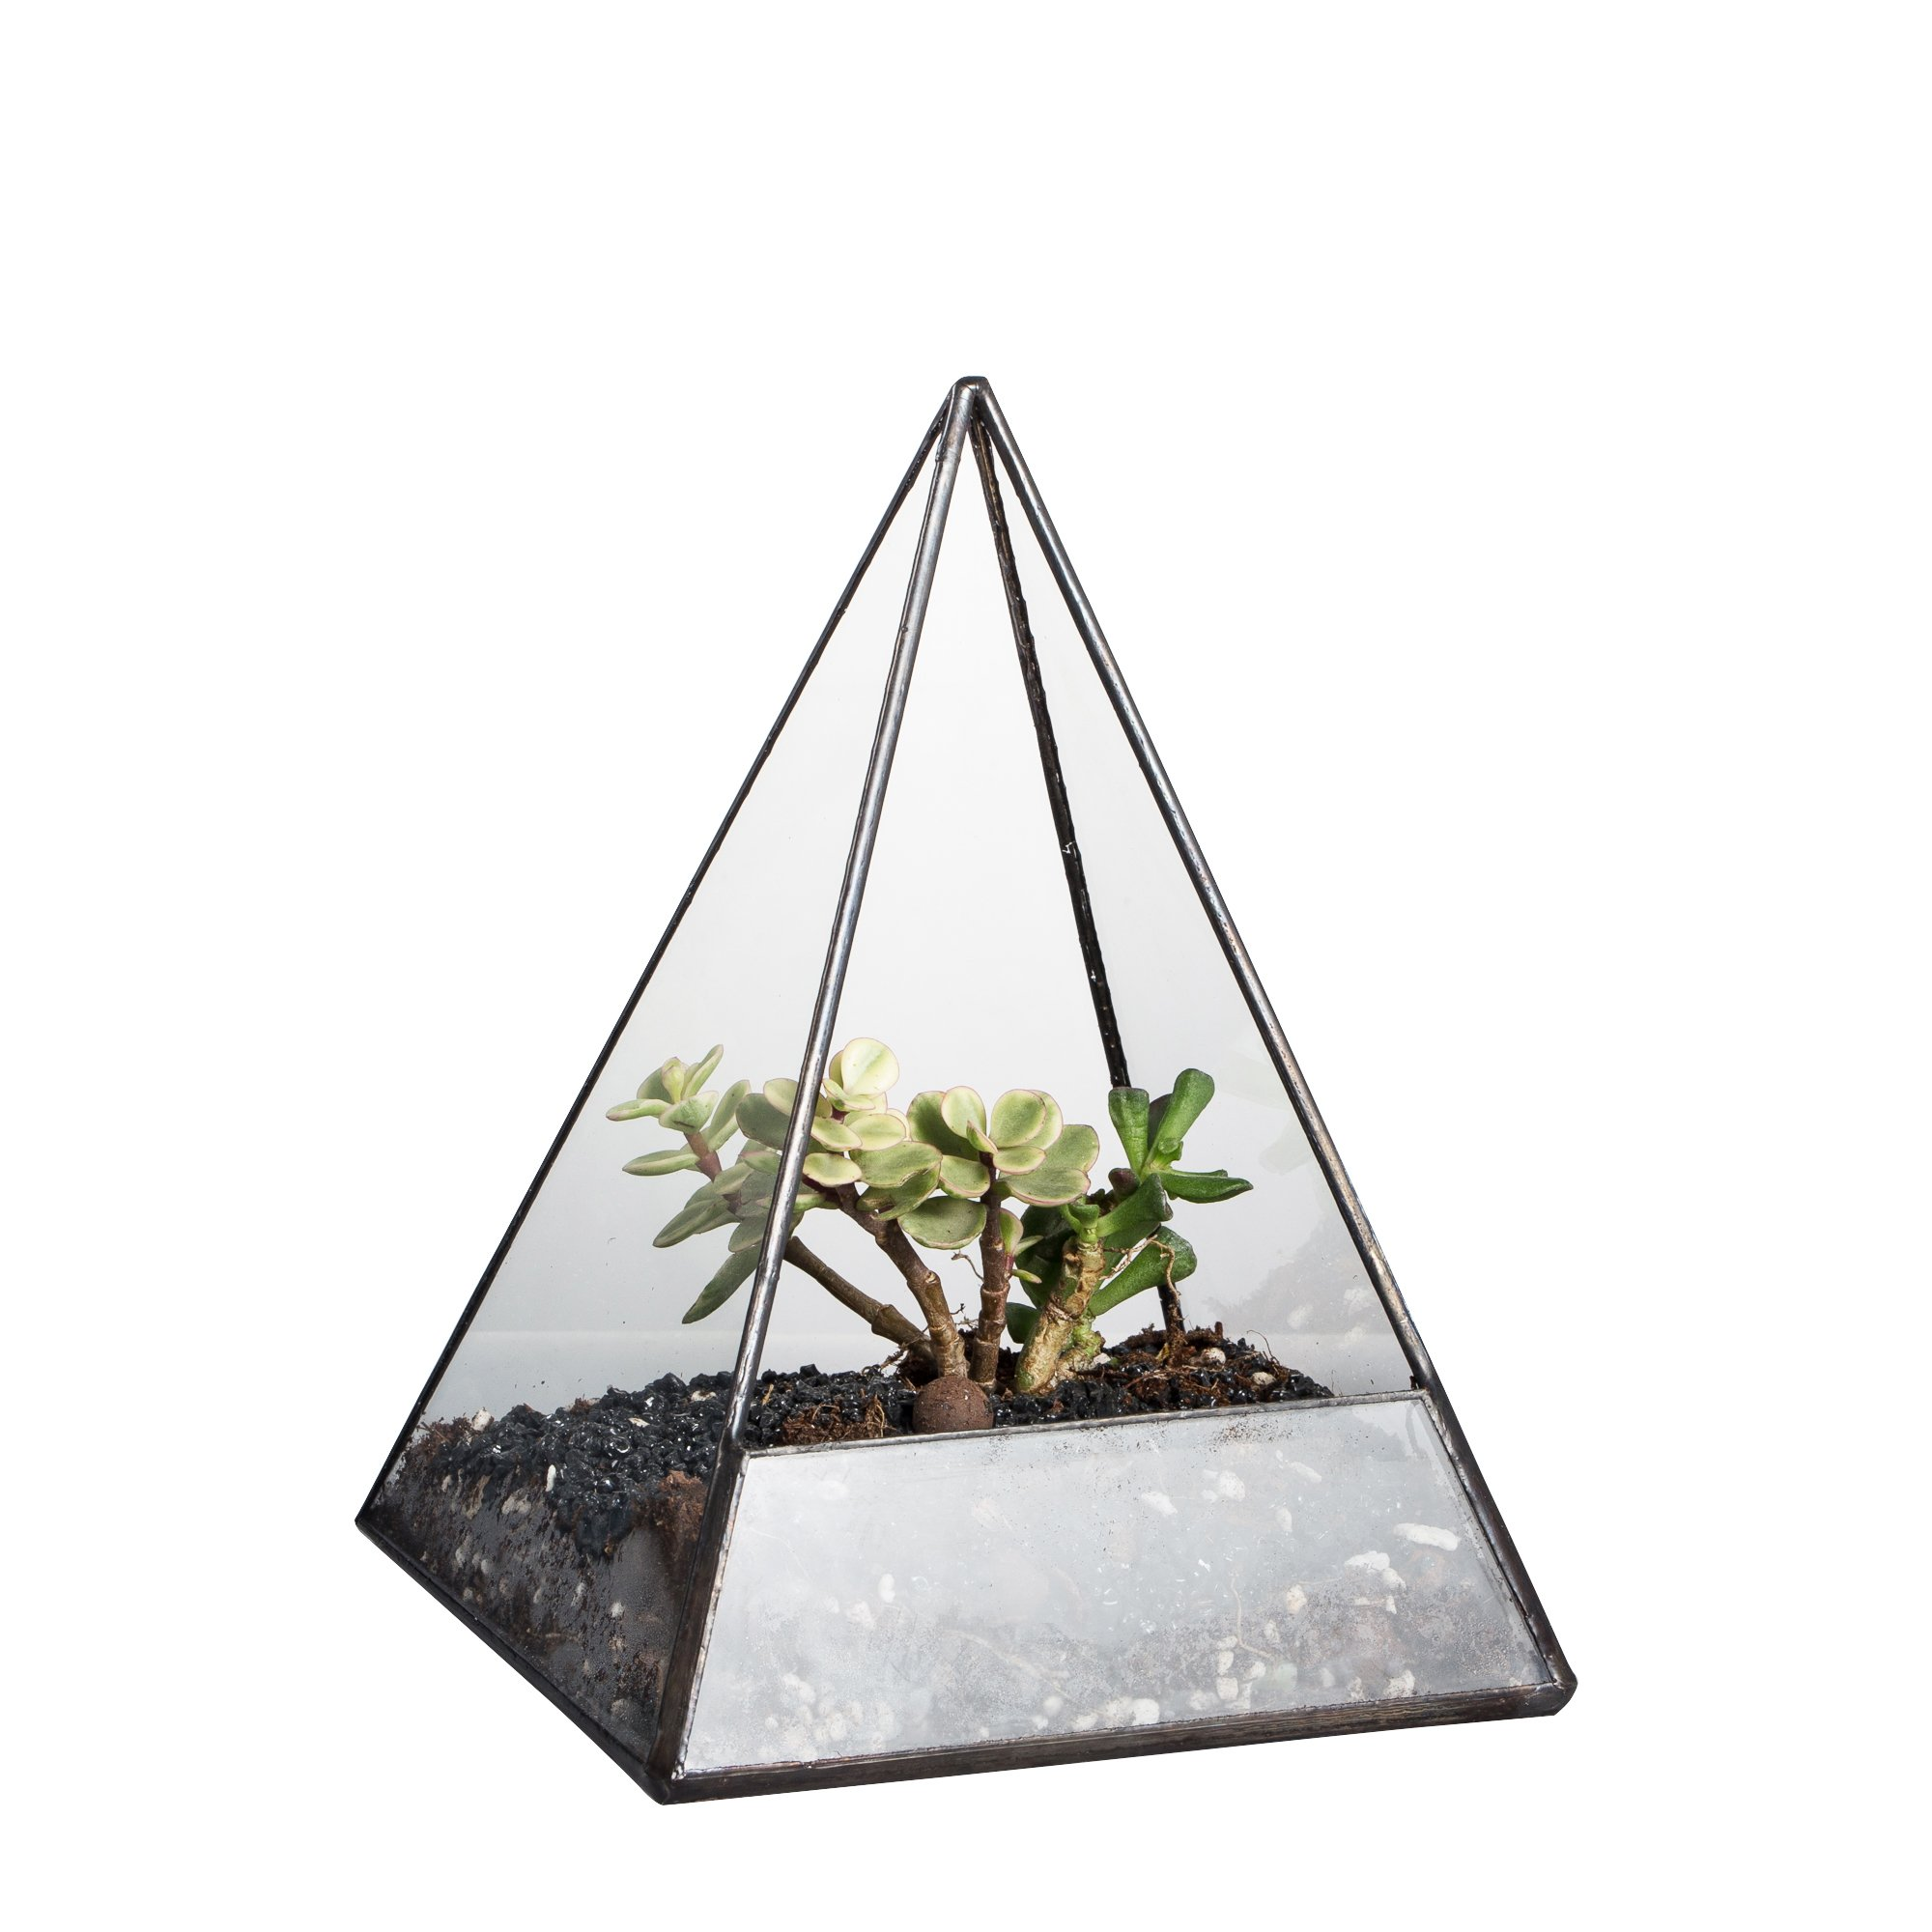 NCYP Modern Handmade Pyramid Glass Geometric Terrarium Tabletop Decor Flower Pot for Moss Fern Succulent Air Plant Balcony Display Planter Vase Container Black 7.4inch Height